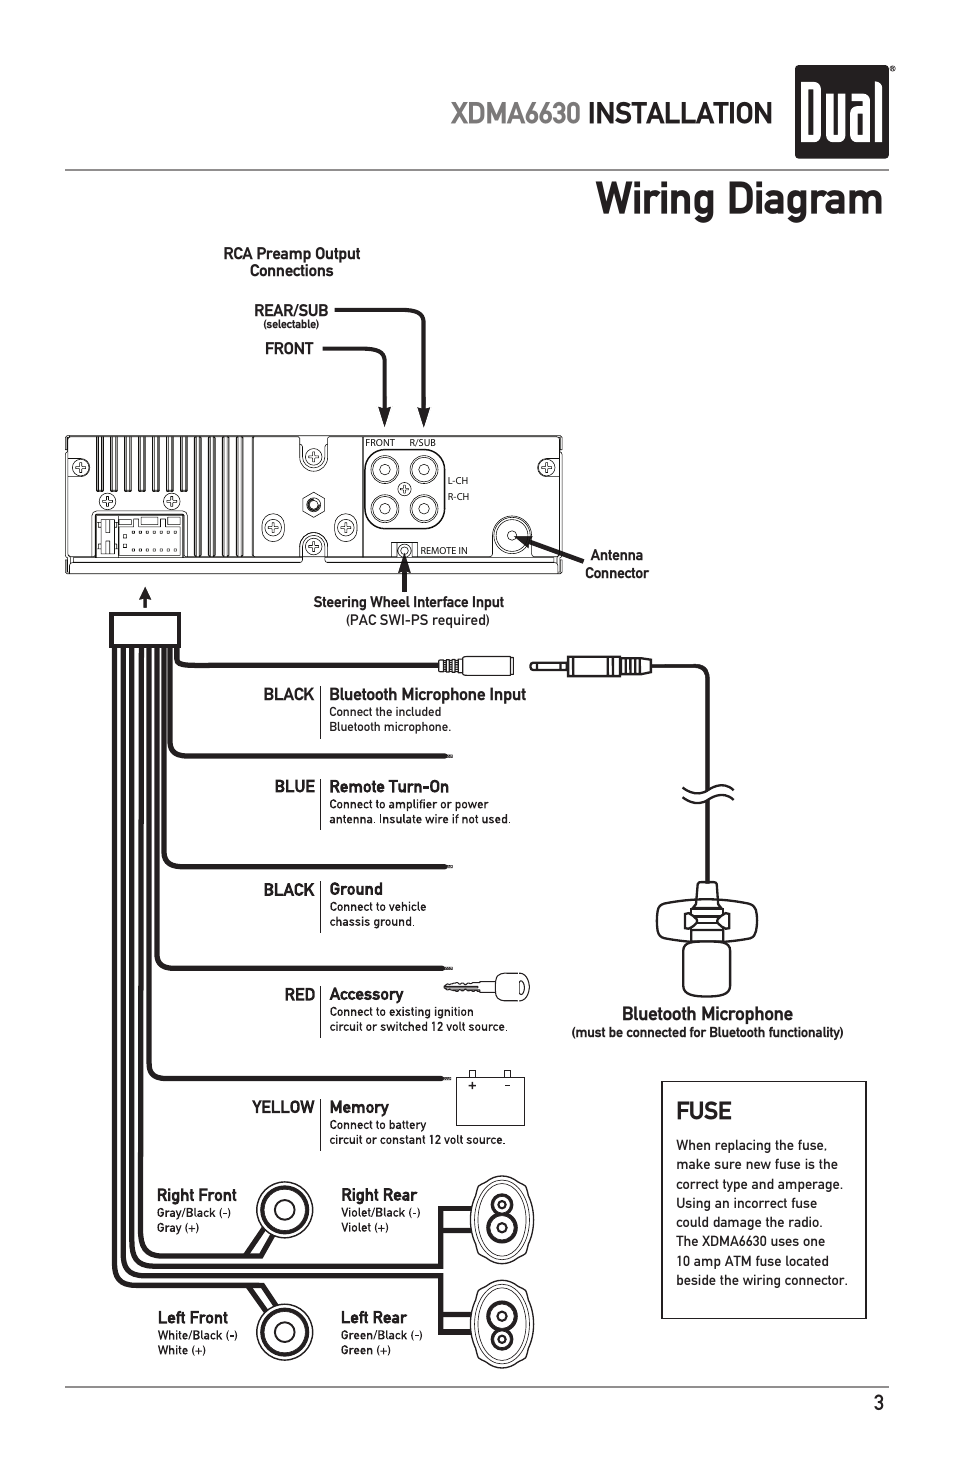 wiring diagram  xdma6630 installation  fuse